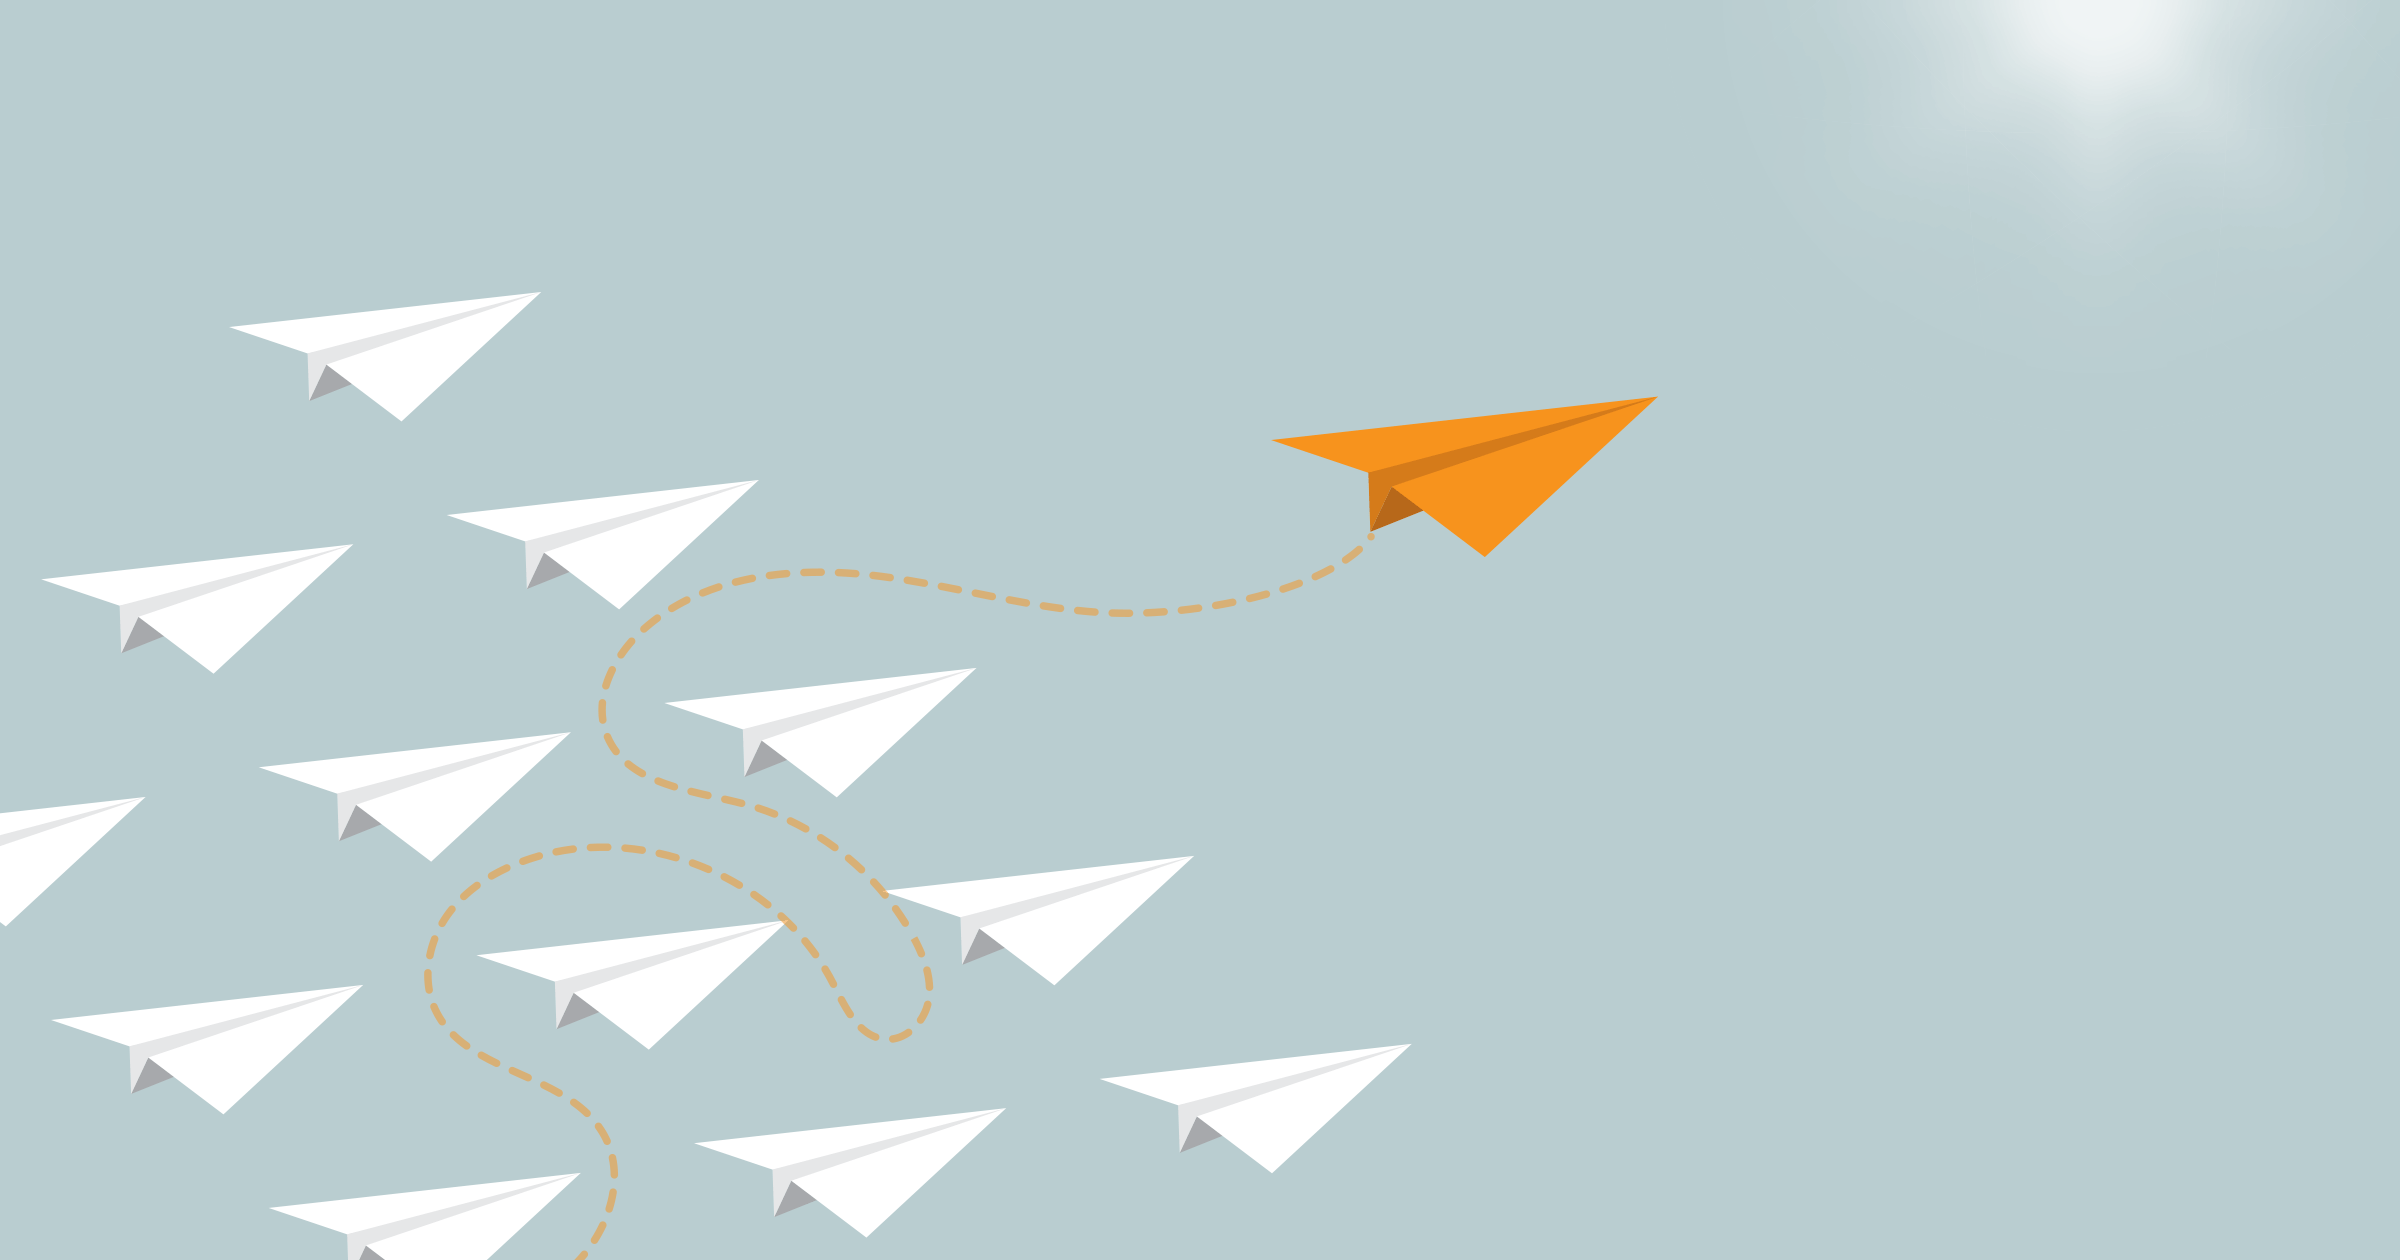 An orange paper airplane weaving its way through, and coming out ahead of, a group of white paper airplanes, against a blue background.